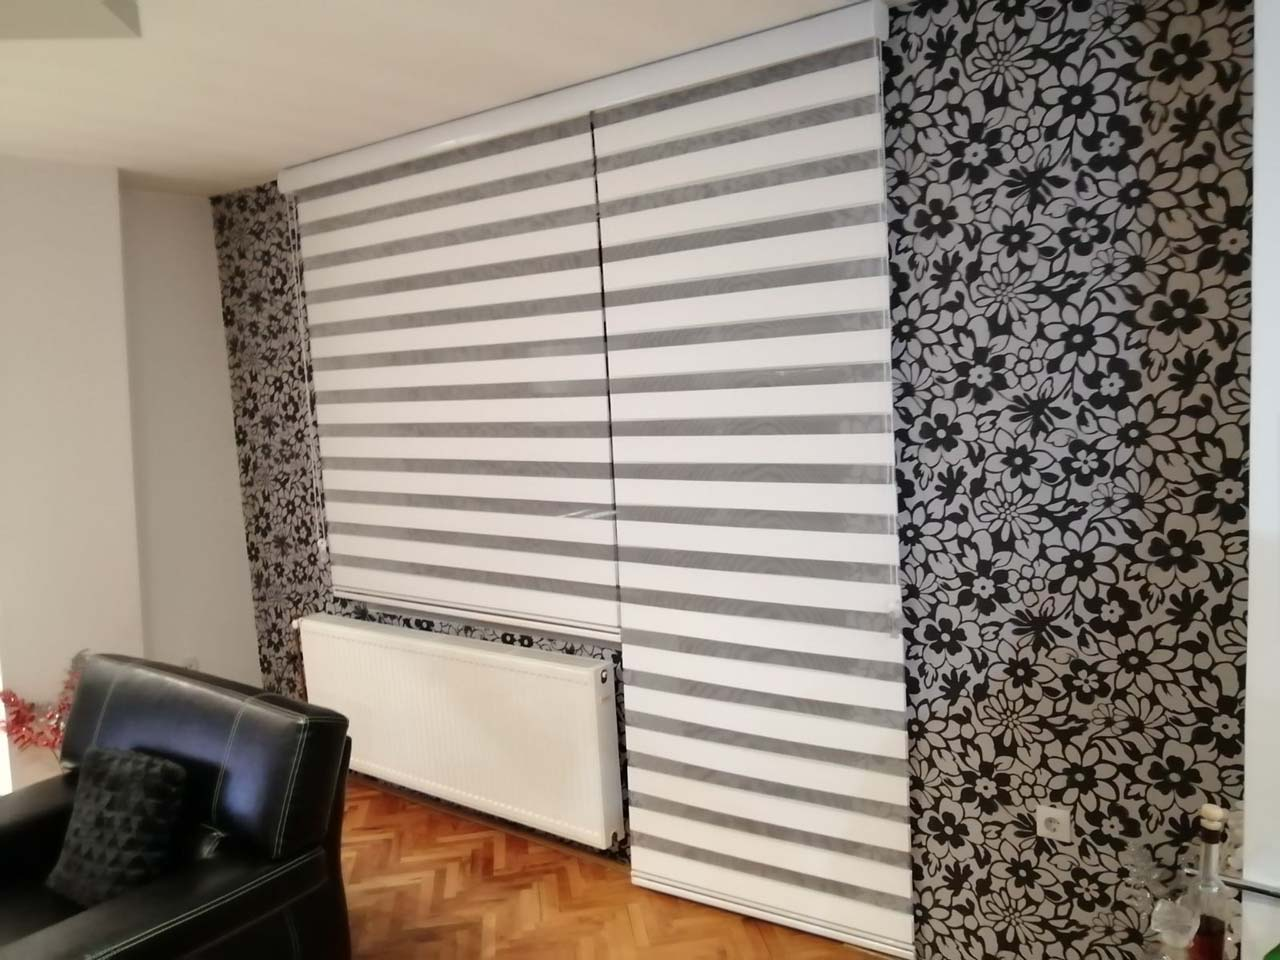 CURTAIN ROLLER BLINDS M ROLL  Awnings, Venetian Blinds, Blinds Kragujevac - Photo 6